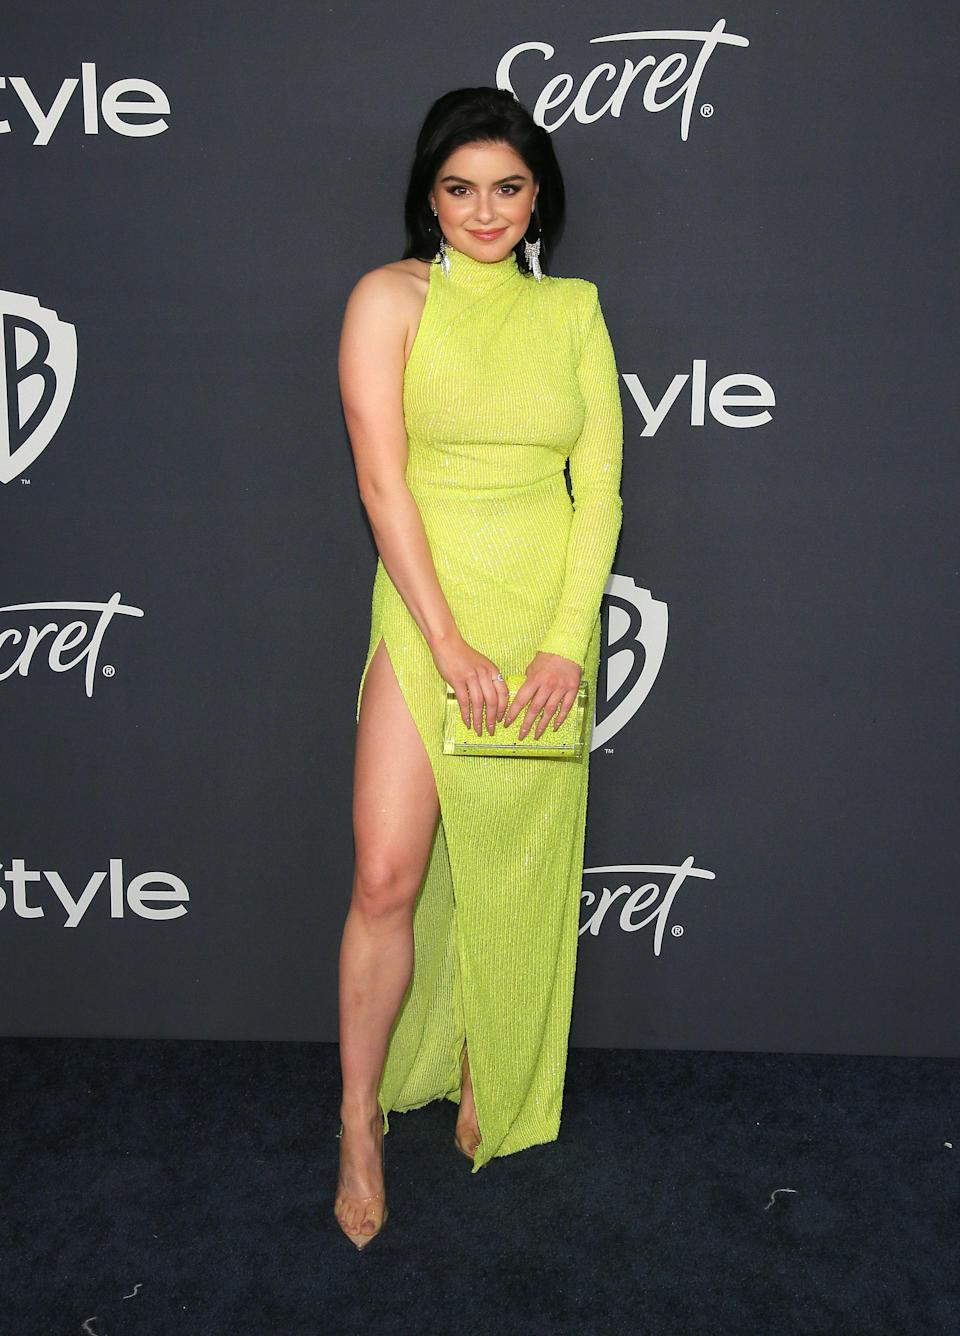 Ariel showed up to a Golden Globes afterparty in this asymmetrical, neon dress that was covered in sequins. The subdues texture of the garment makes for an added detail and Ariel took it to the next level with a matching purse and some transparent heels.